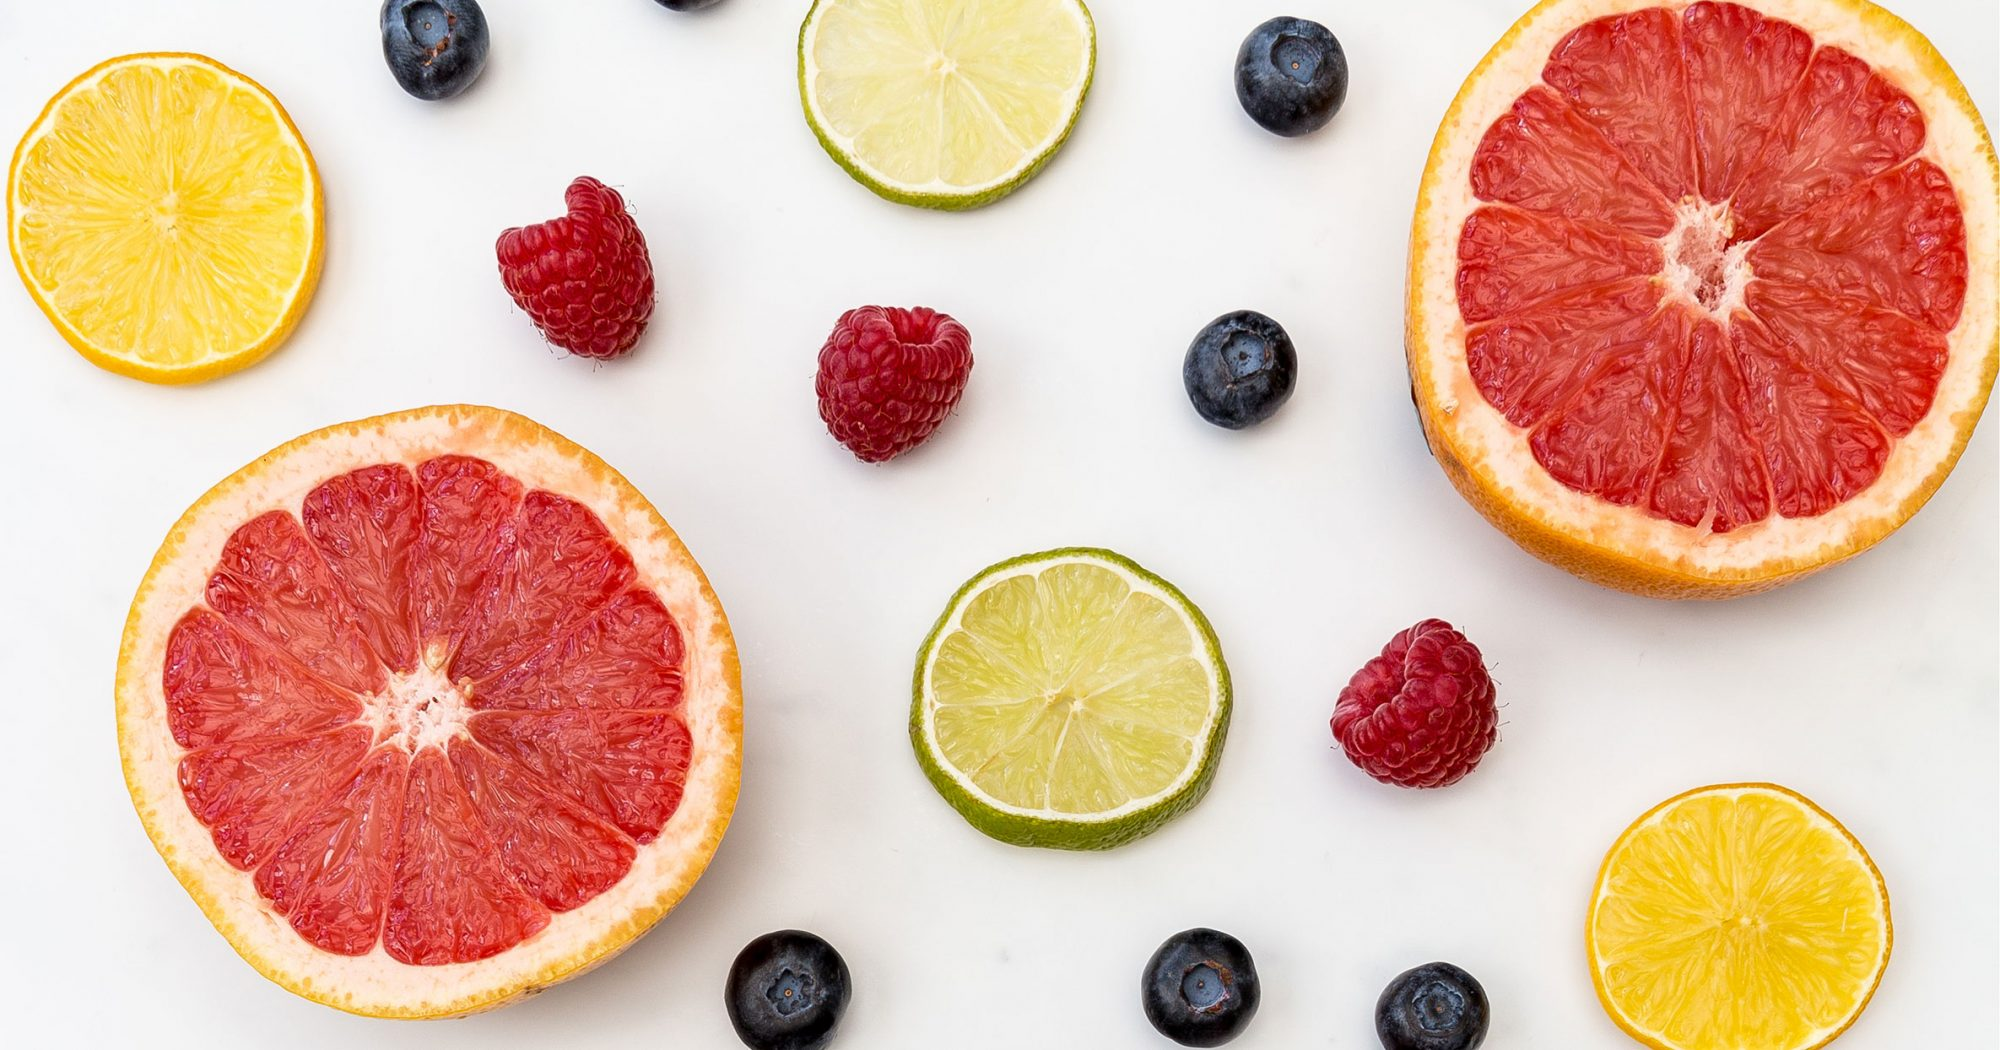 These Keto Approved Fruits Are Low In Sugar for the Carb-Conscious